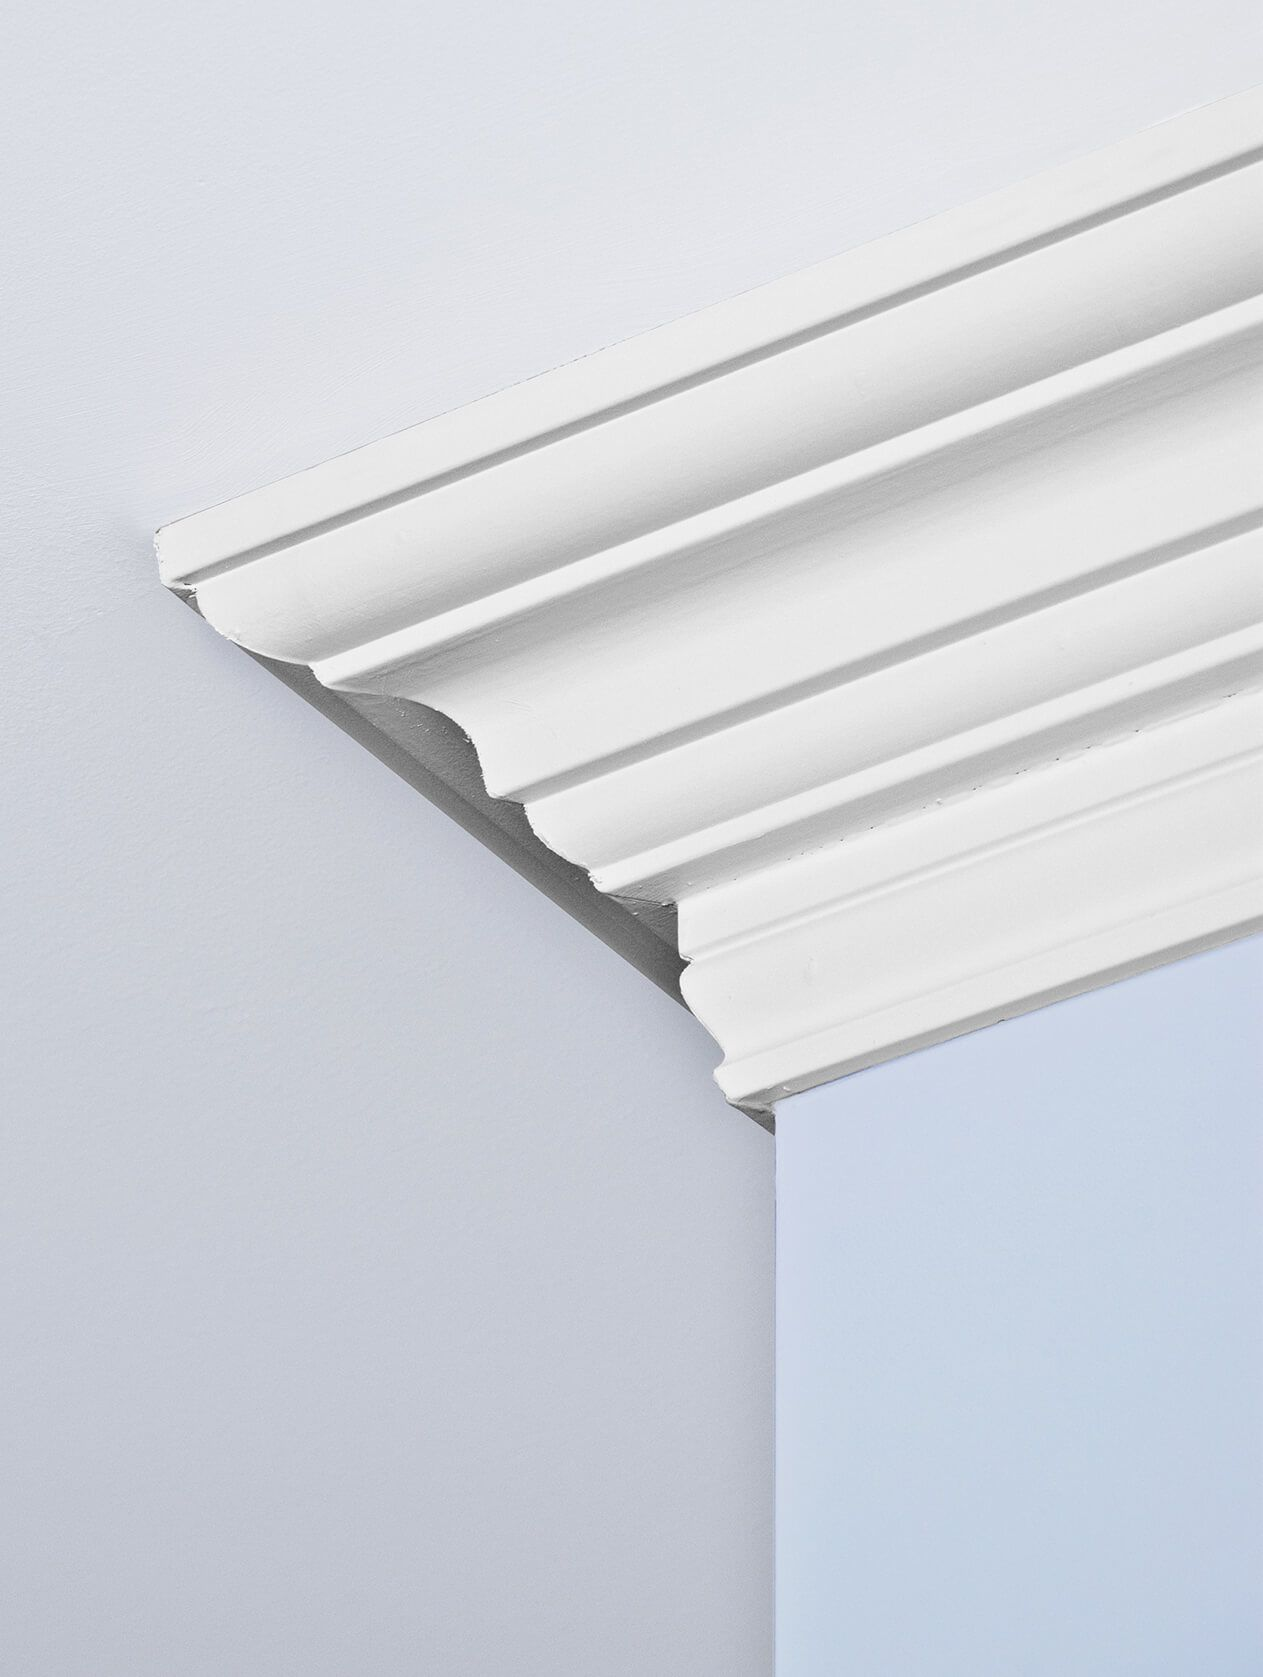 How To Choose The Correct Size Crown Moulding Horner Millwork Crown Molding Crown Molding Styles Colonial Heights